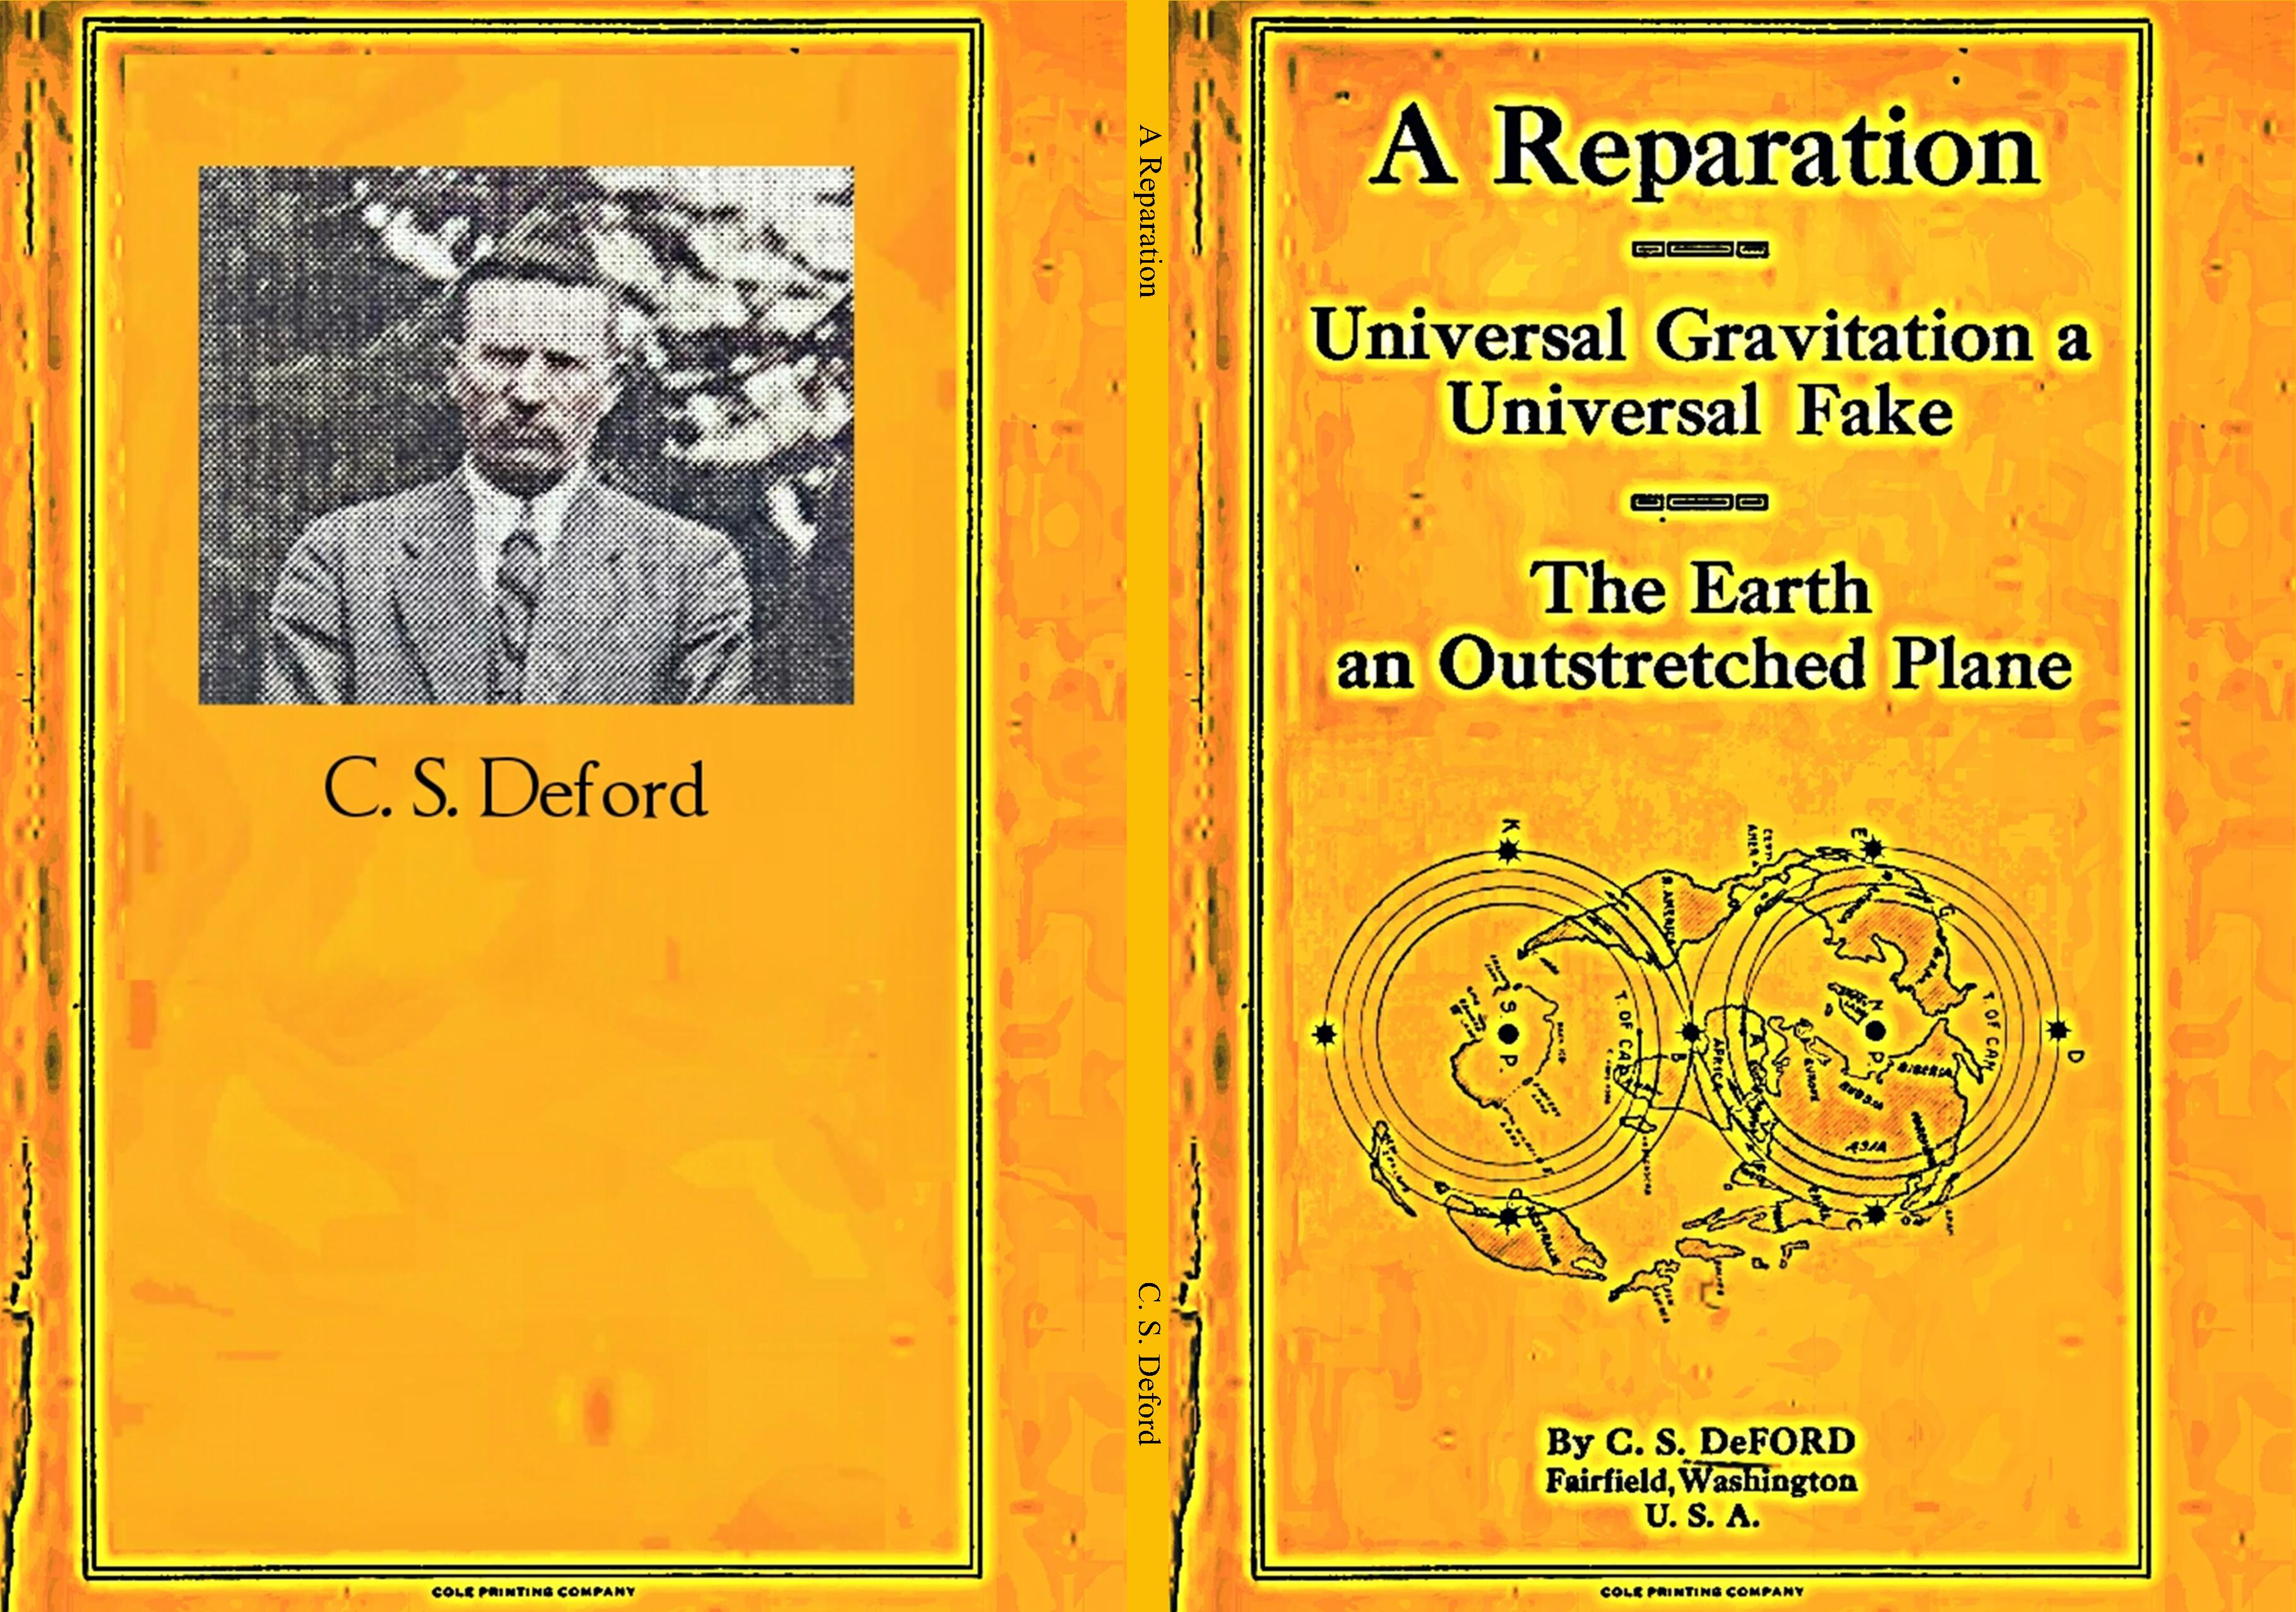 A Reparation: Universal Gravitation a Universal Fake cover image